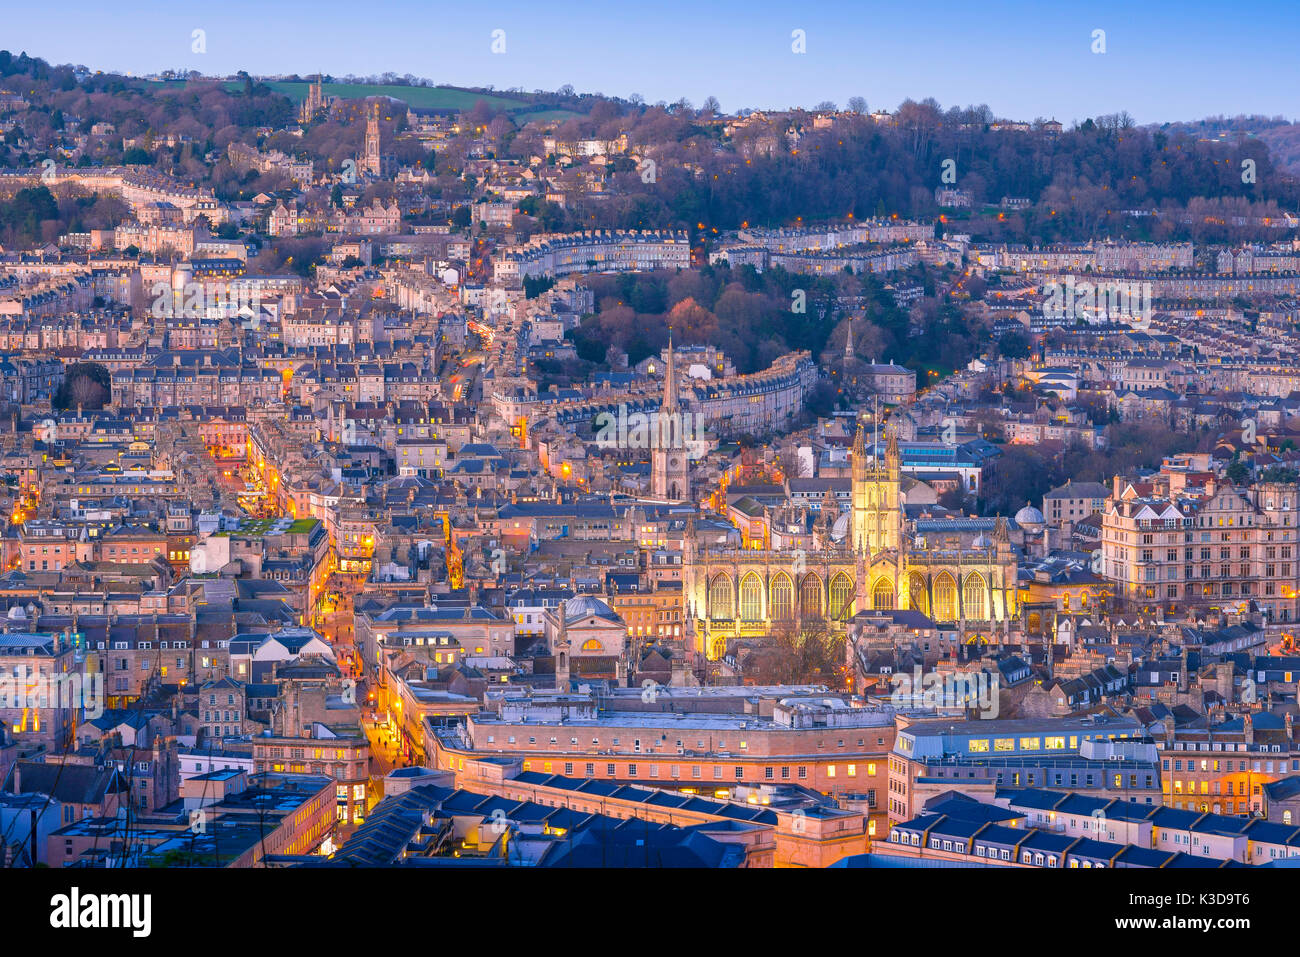 Bath city UK, aerial view of the city of Bath at twilight on a winter evening, Somerset, England, UK - Stock Image